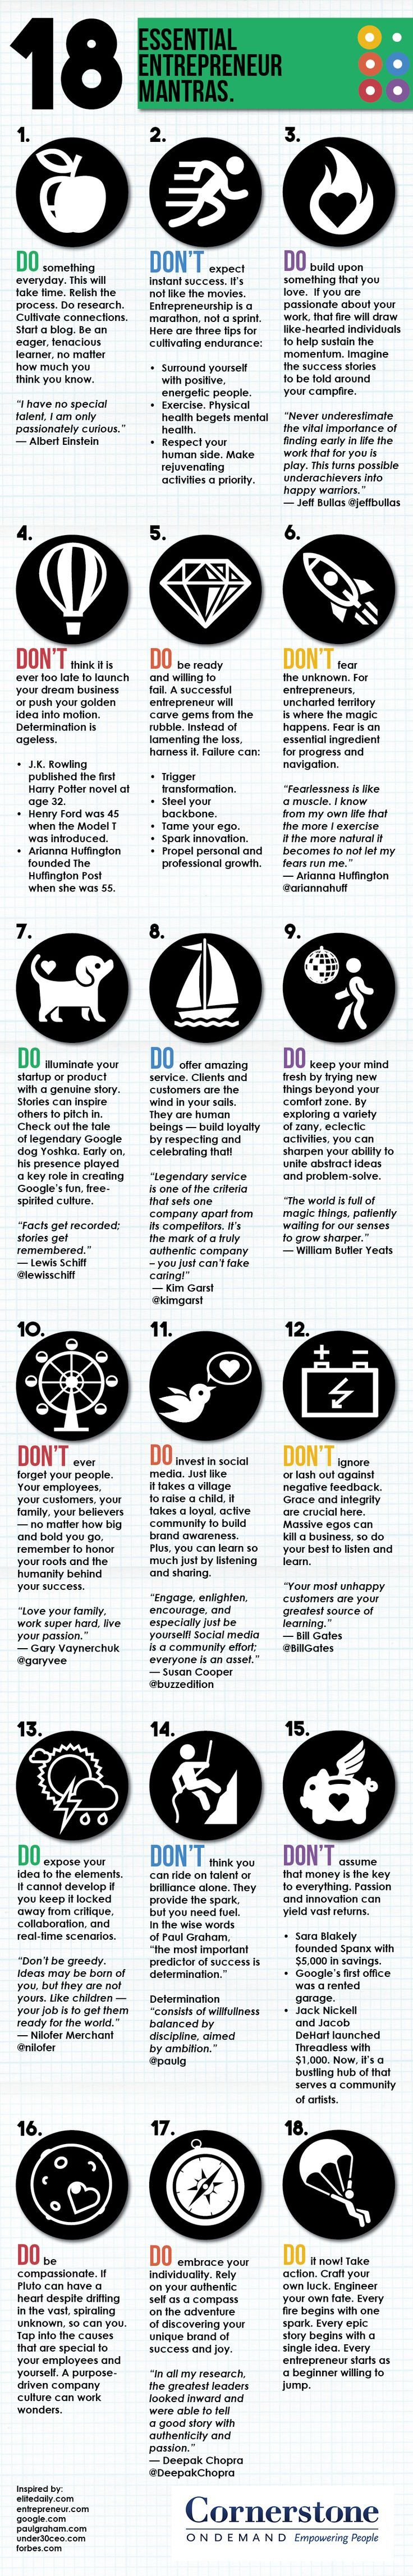 18 Essential Entrepreneur Mantras #infographic #Business #Entrepreneur